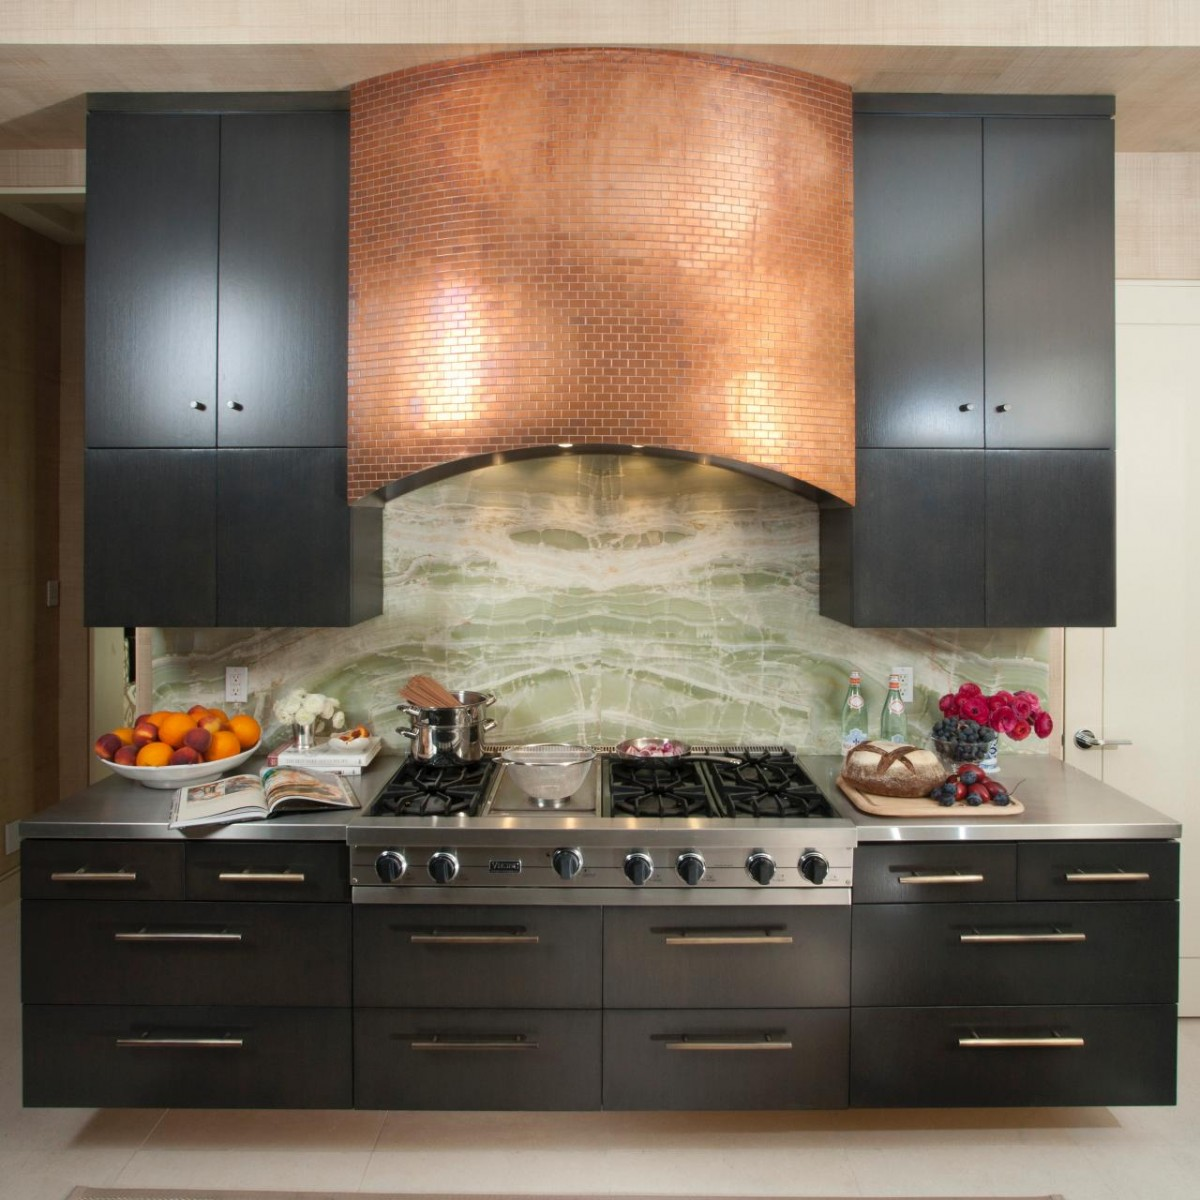 Styles Of Kitchen 4 Types Of Kitchen Range Hoods To Transform Your Kitchen